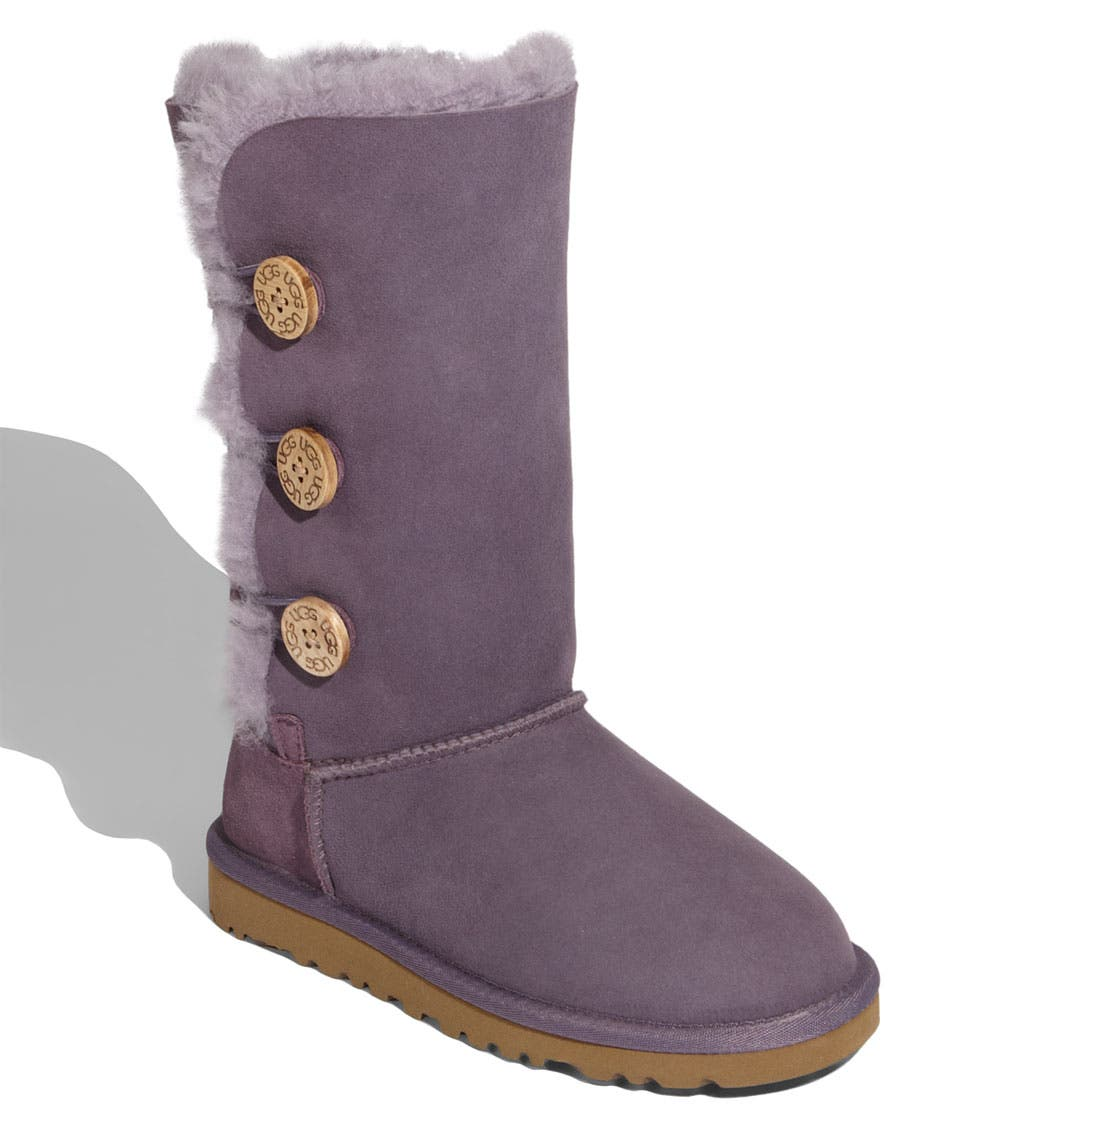 Main Image - UGG® 'Bailey Button Triplet' Boot (Little Kid & Big Kid)